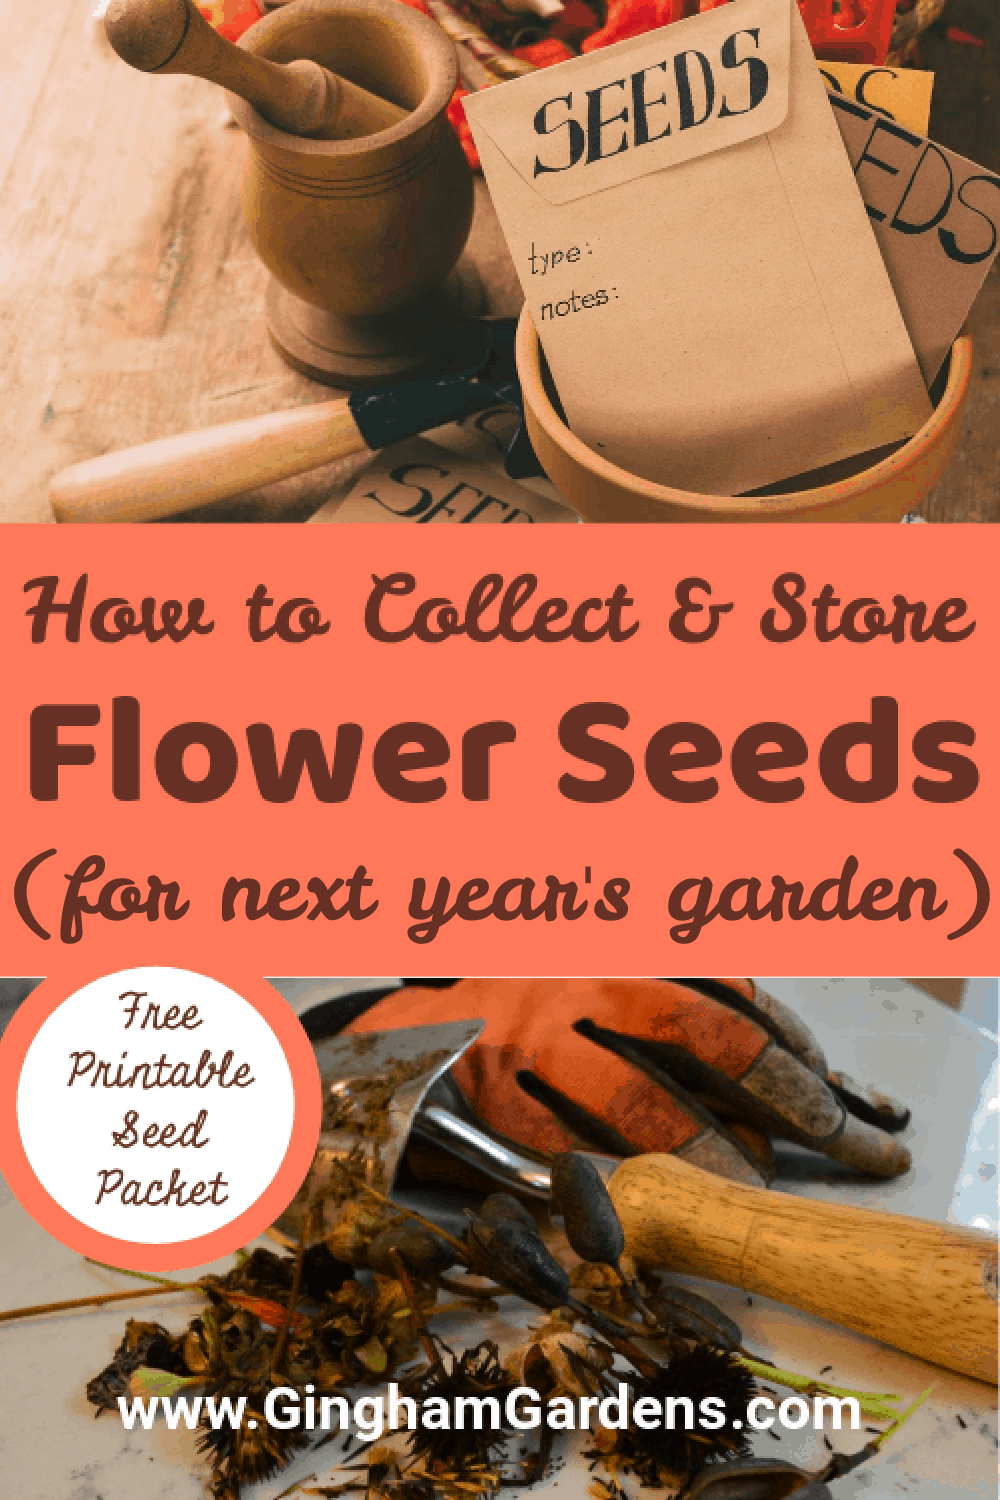 Images of Seeds with Text Overlay - How to Collect and Store Flower Seeds